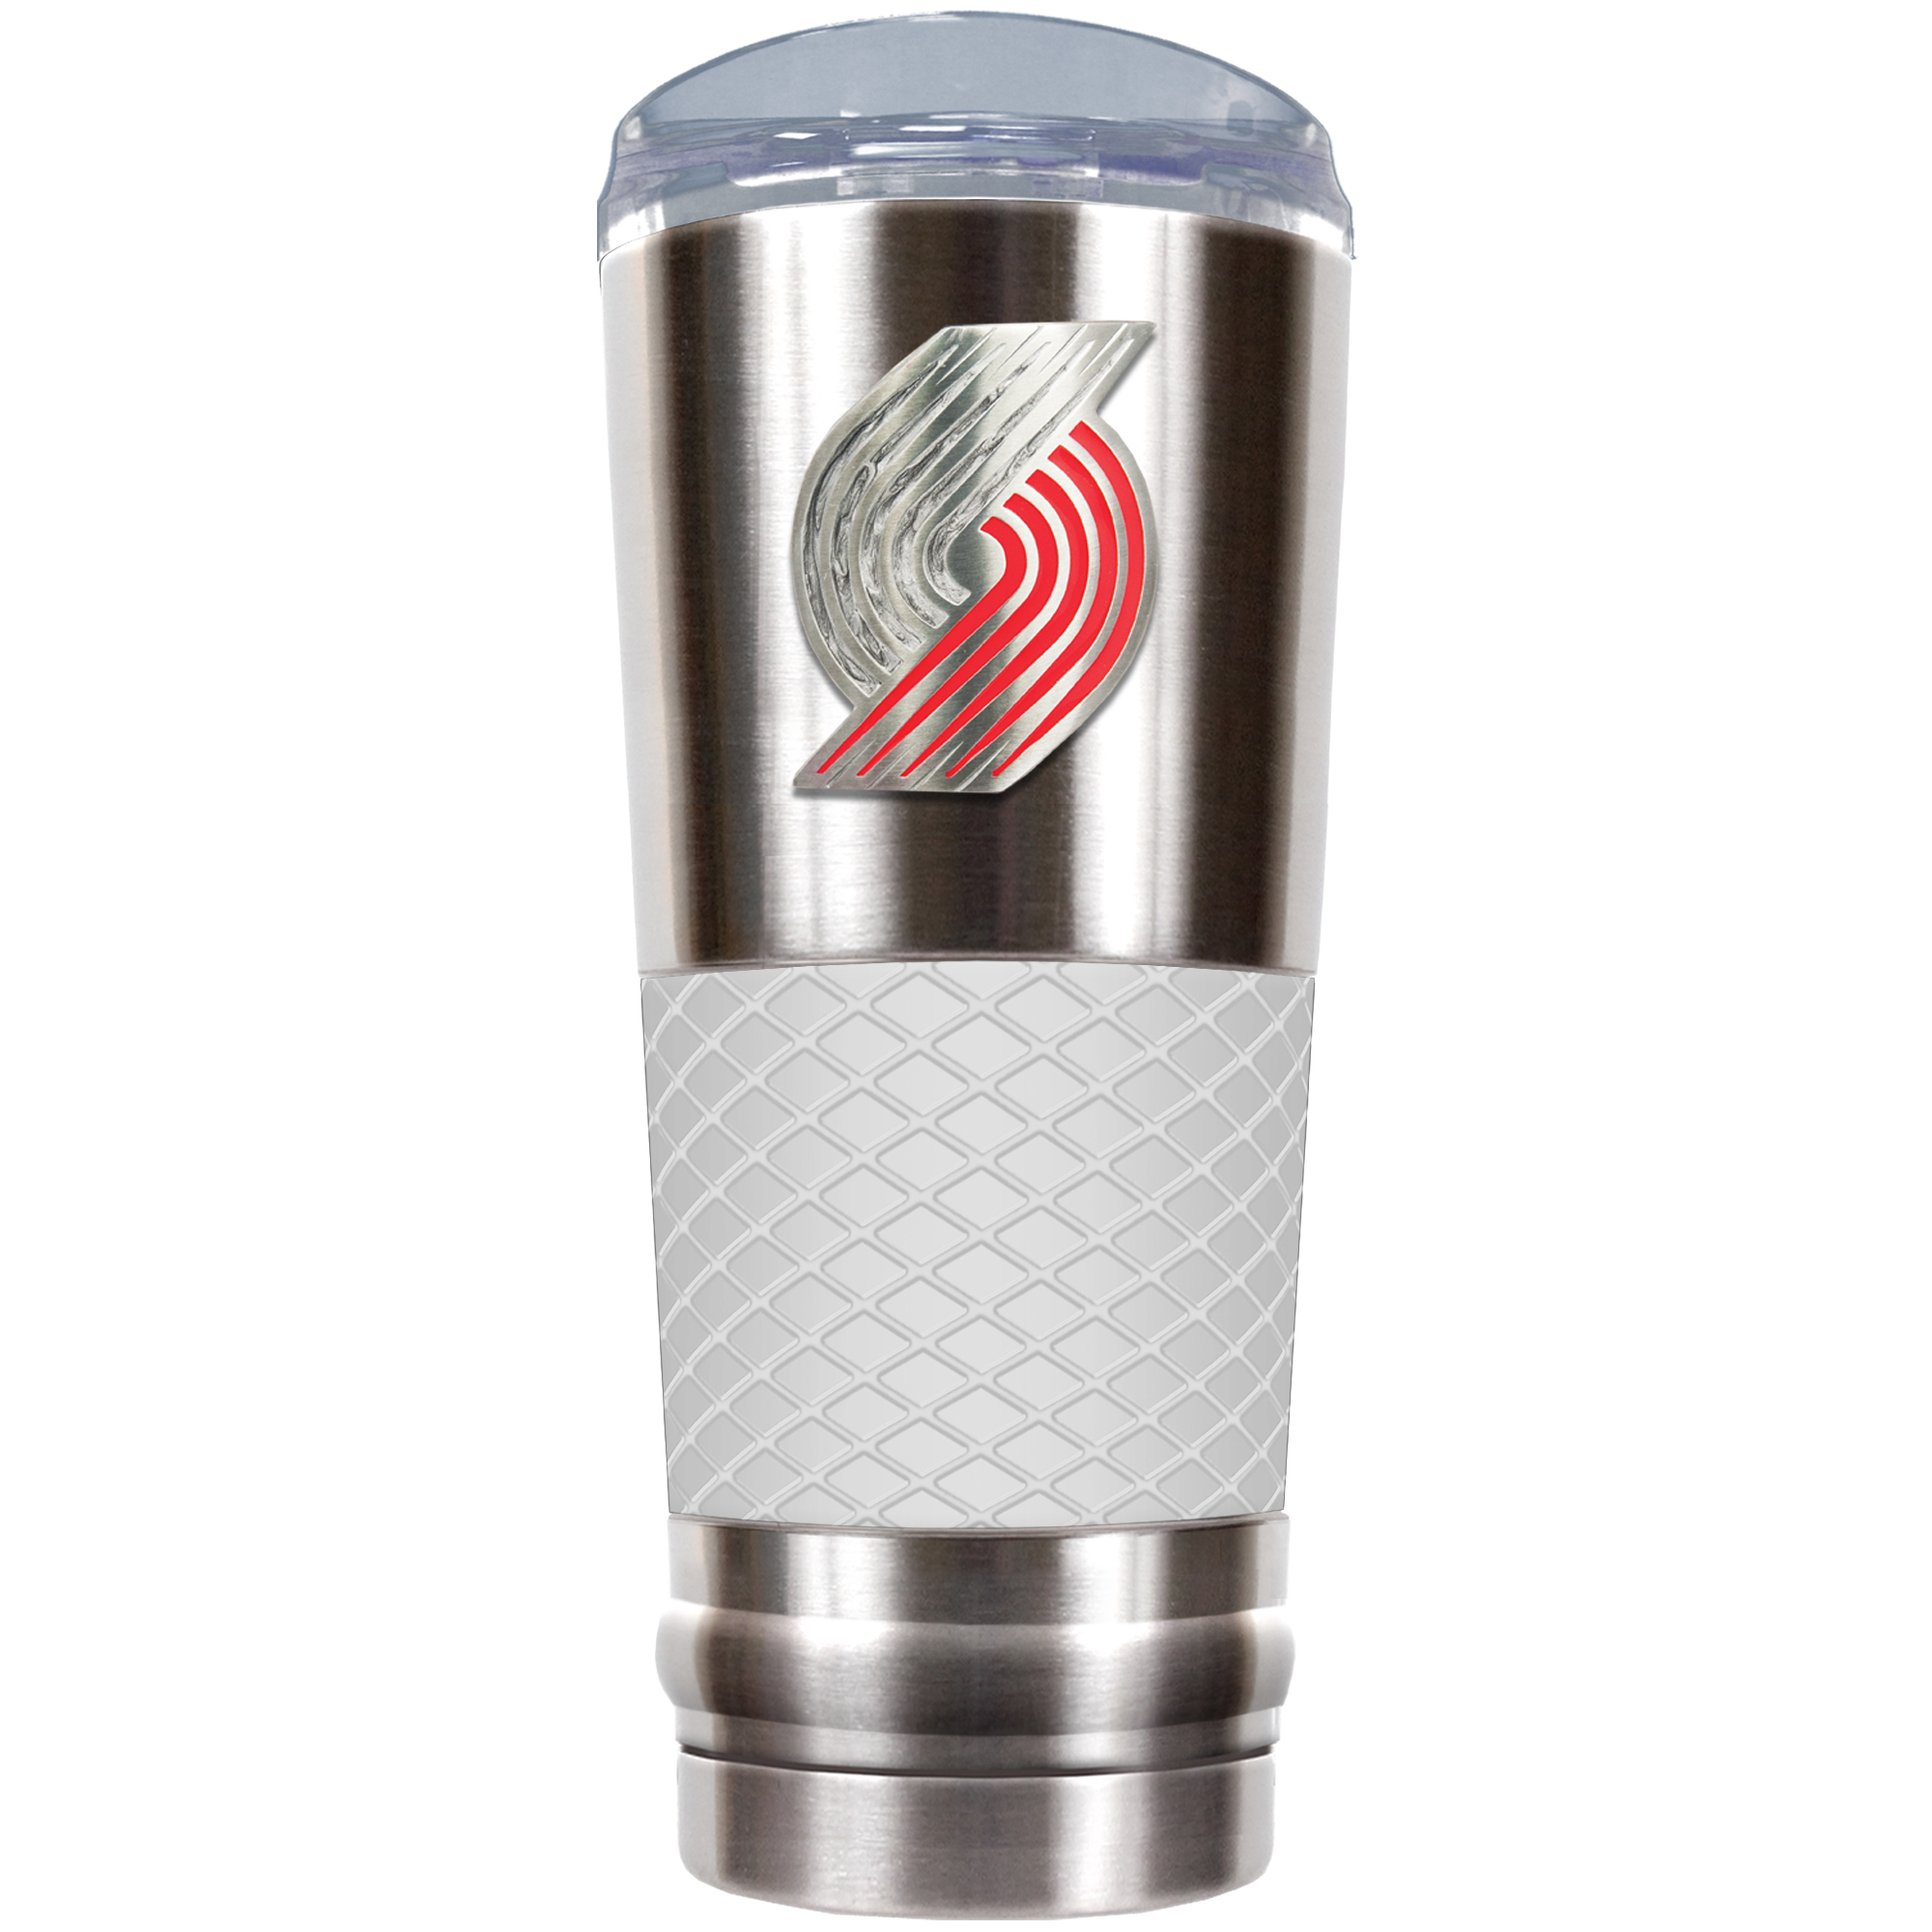 Portland Trail Blazers 24oz. Draft Tumbler - White - No Size